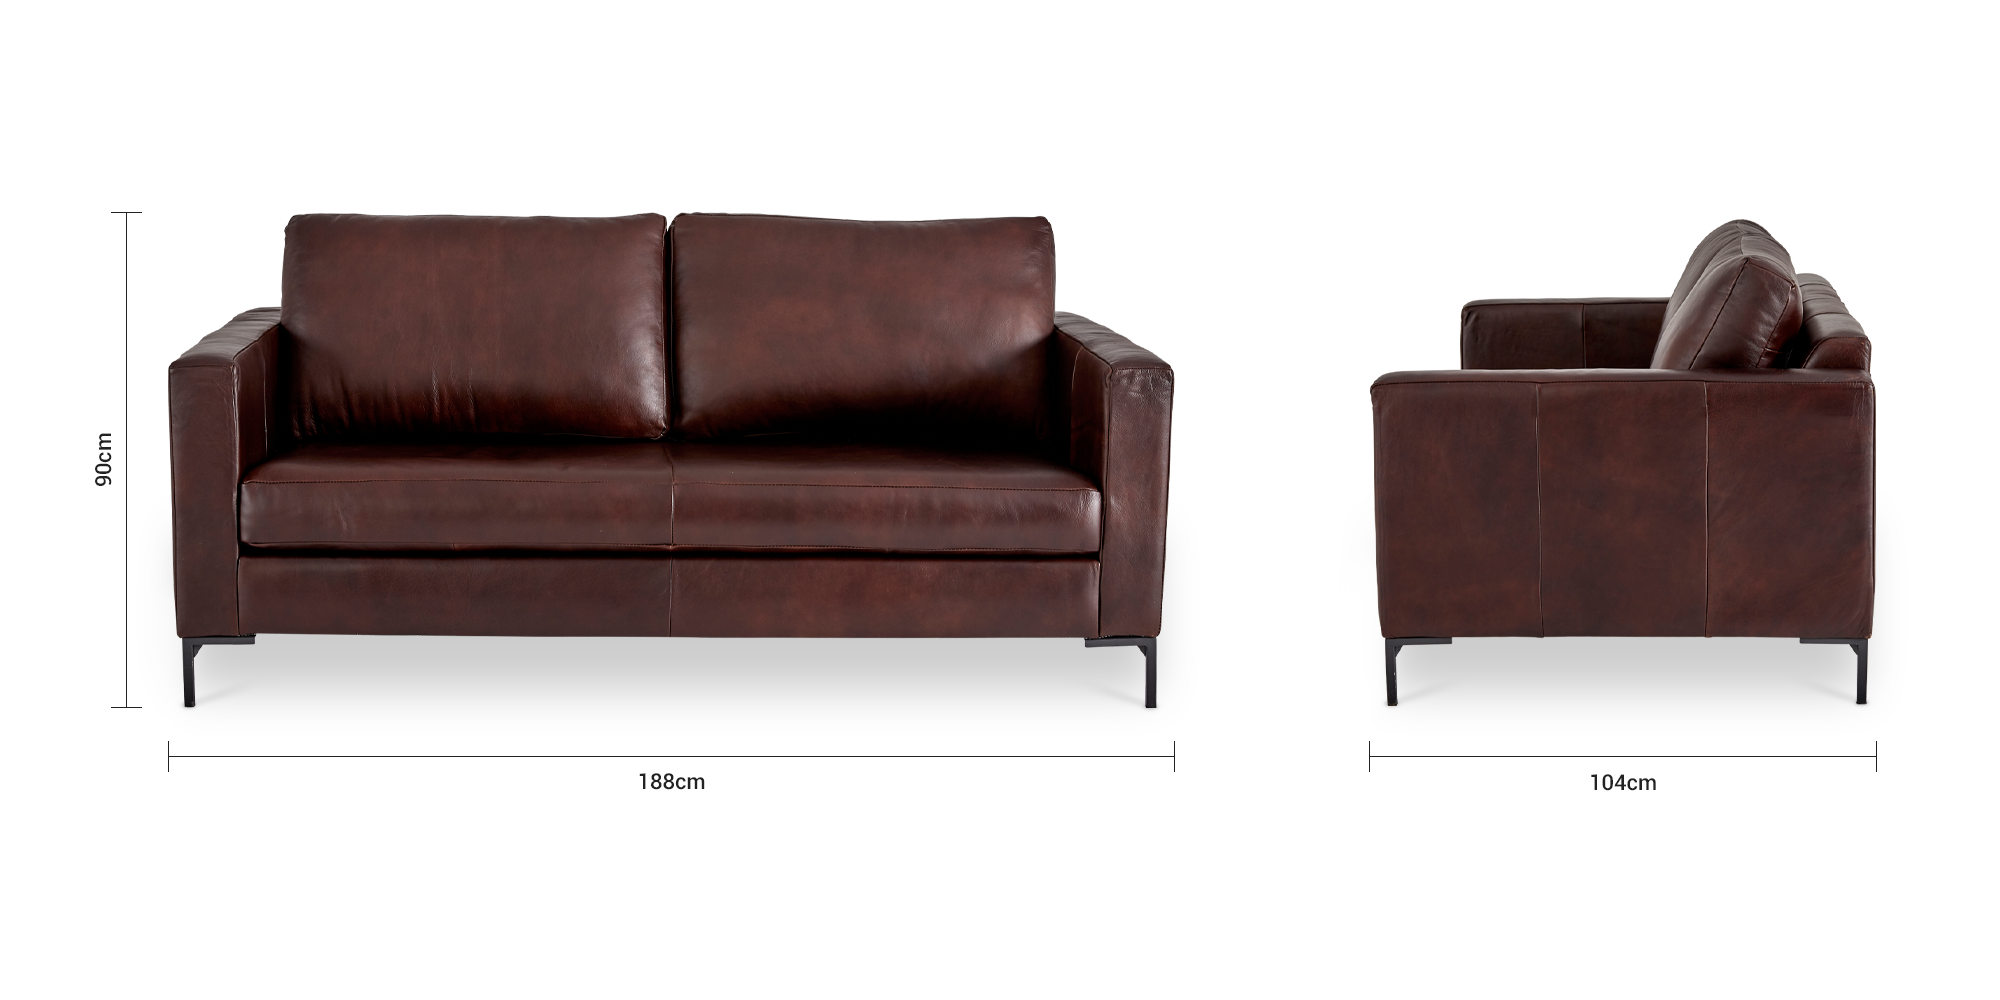 Sami Leather 2 Seater Couch (Metal Leg)